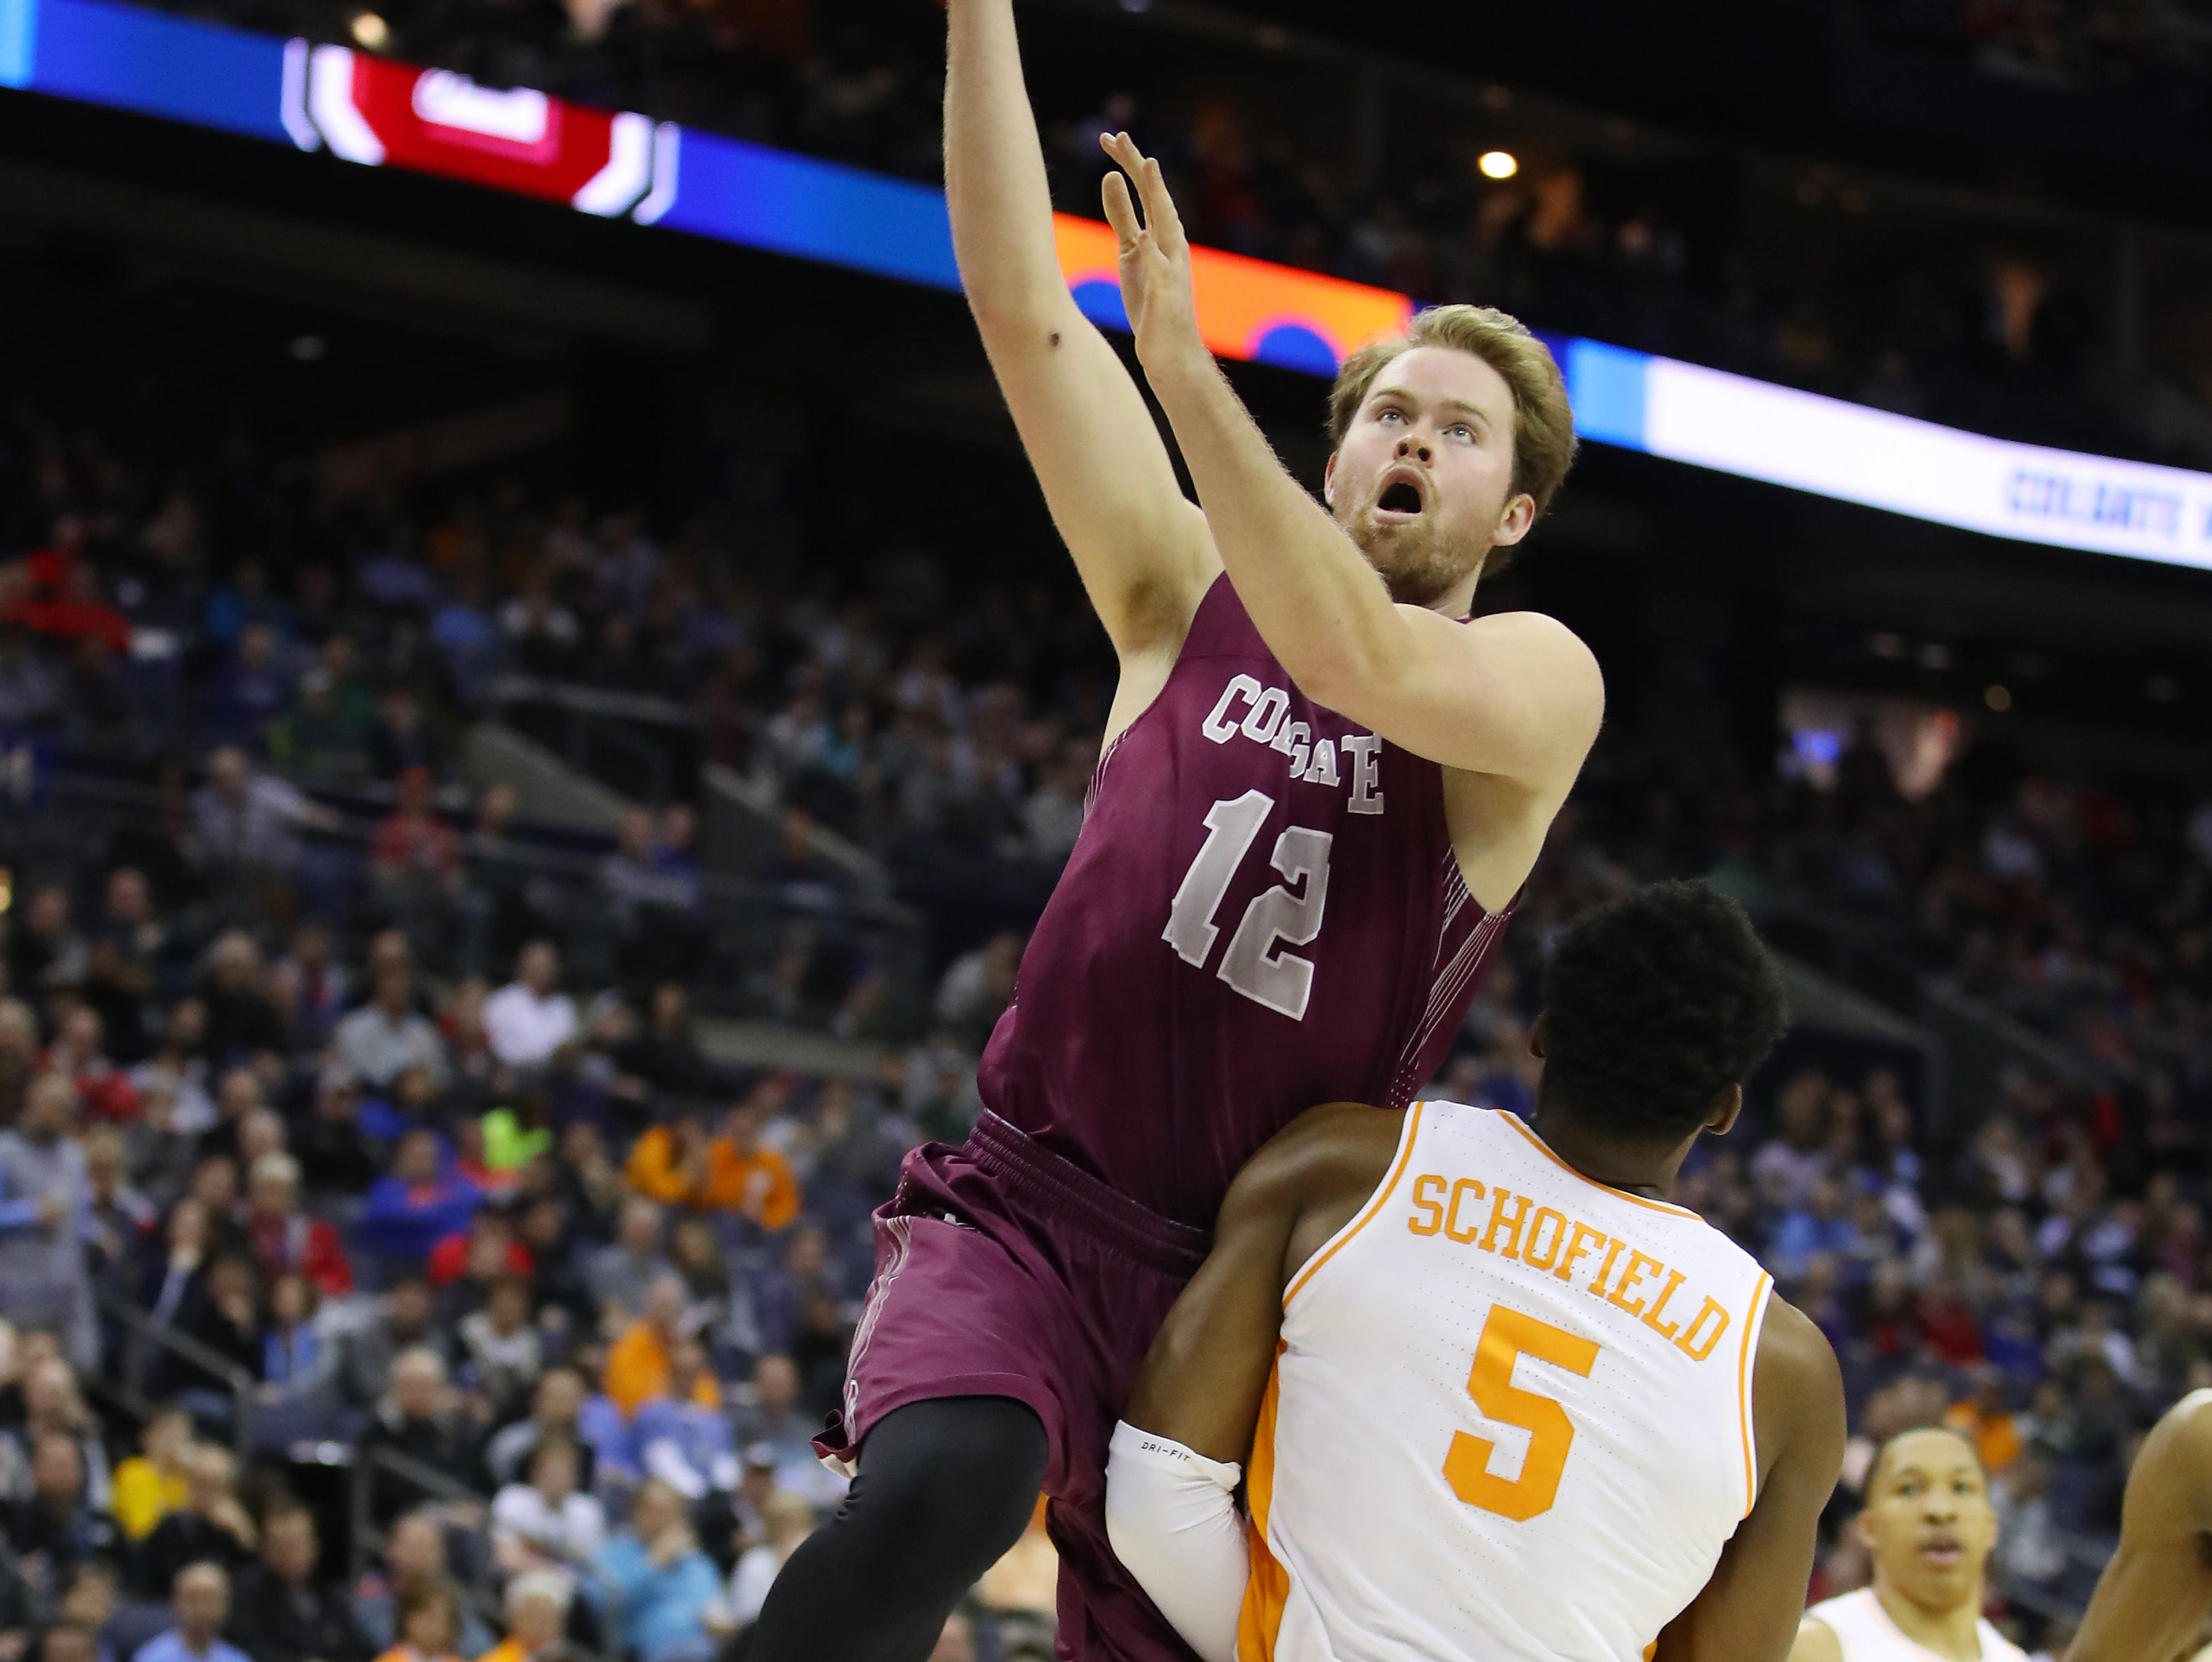 COLUMBUS, OHIO - MARCH 22: Dana Batt #12 of the Colgate Raiders drives to the basket during the first half against the Tennessee Volunteers in the first round of the 2019 NCAA Men's Basketball Tournament at Nationwide Arena on March 22, 2019 in Columbus, Ohio. (Photo by Gregory Shamus/Getty Images)